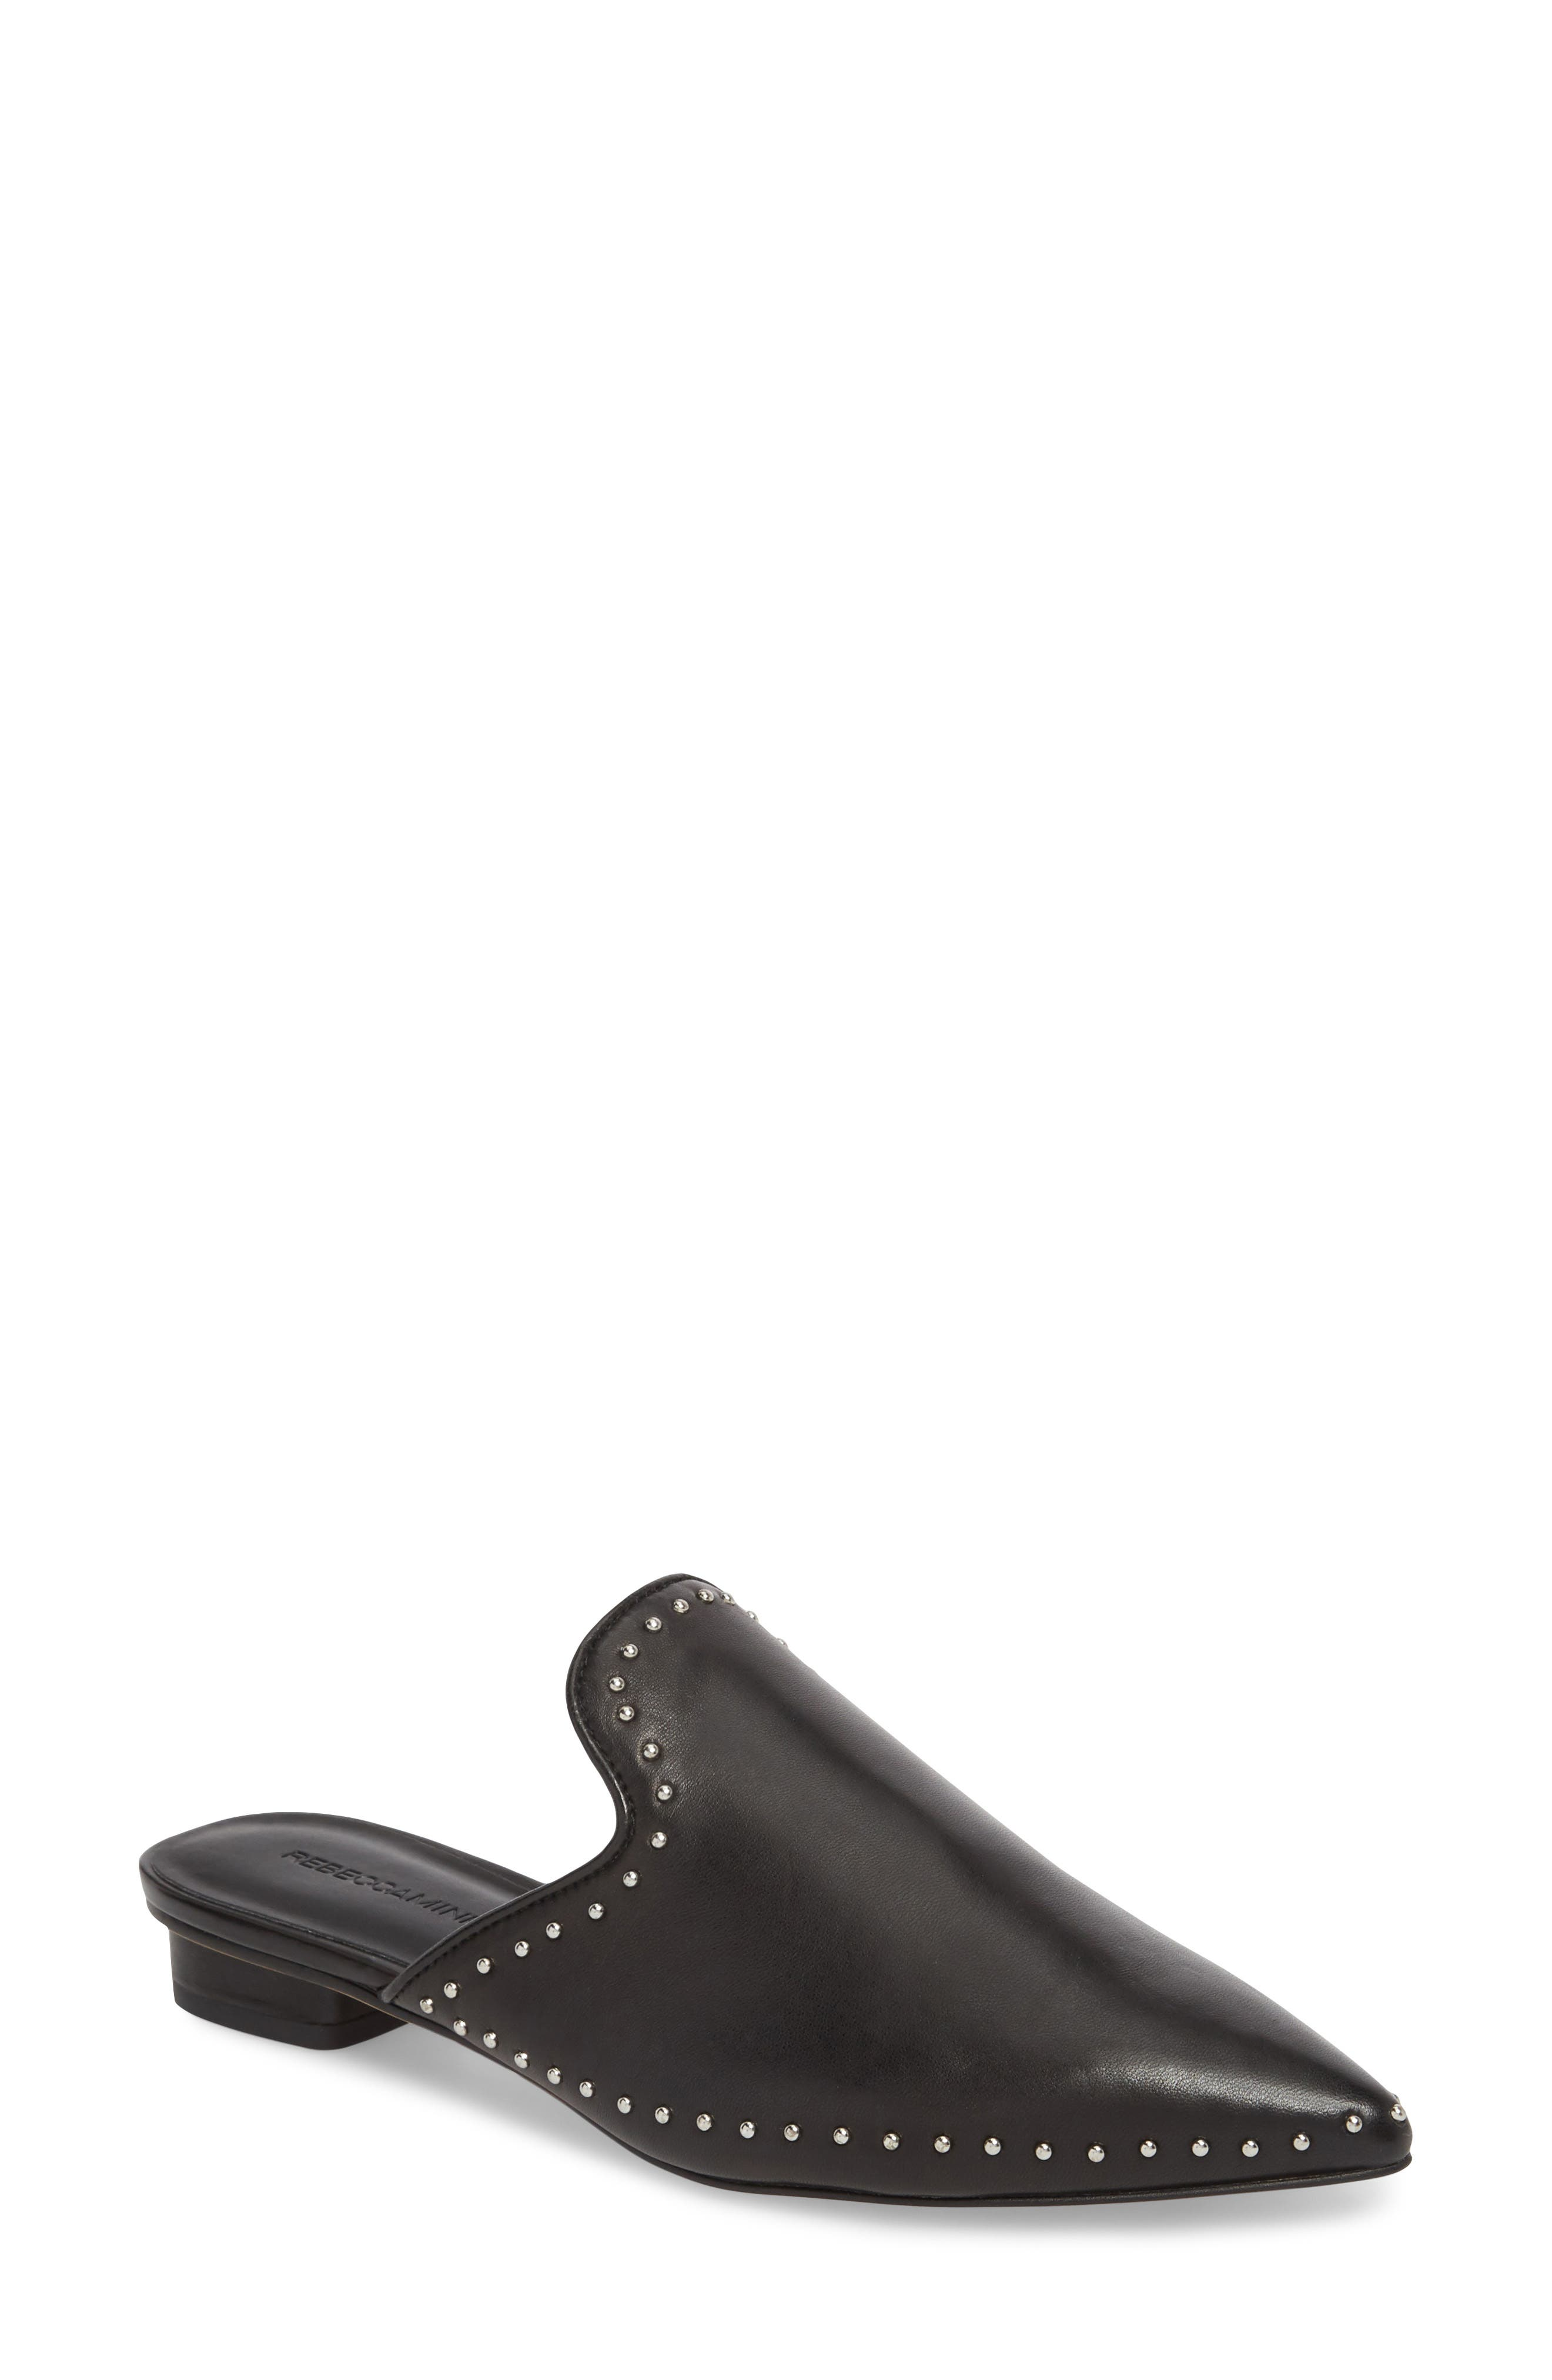 REBECCA MINKOFF Chamille Studded Mule, Main, color, BLACK LEATHER